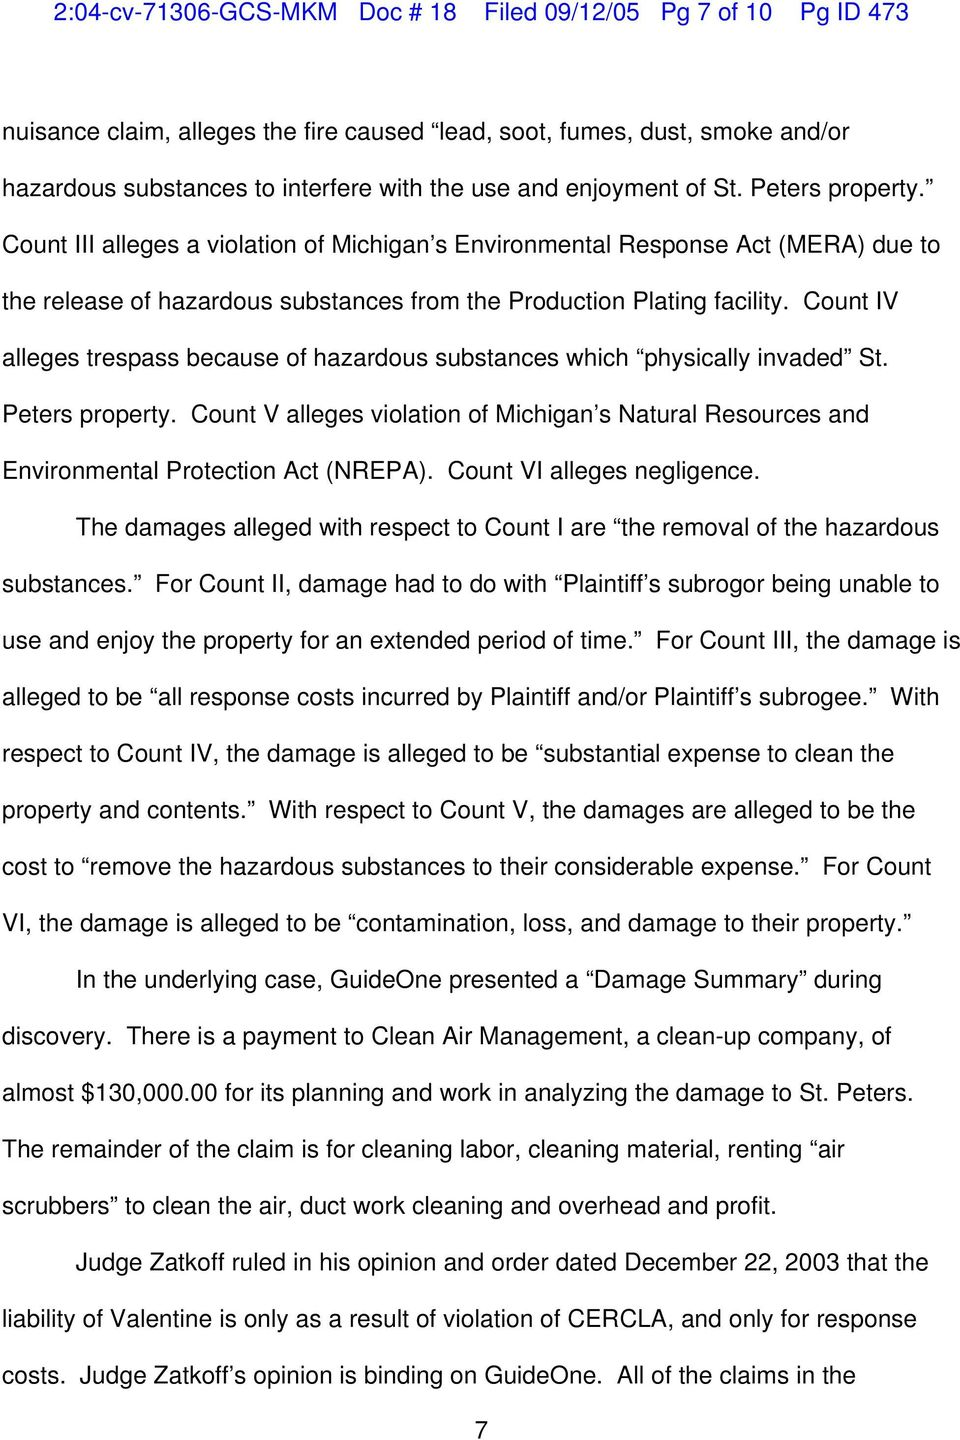 Count IV alleges trespass because of hazardous substances which physically invaded St. Peters property.